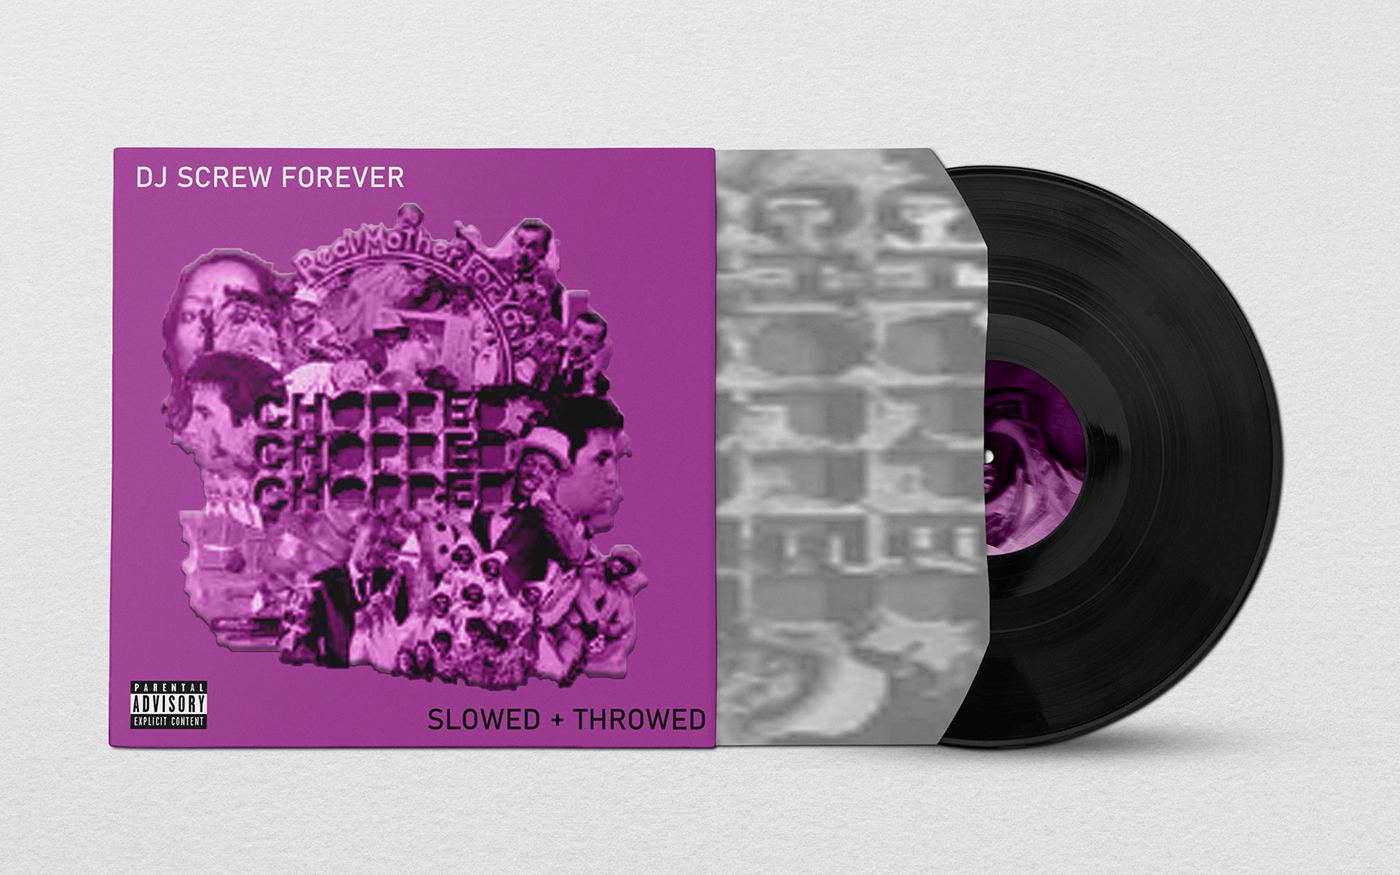 Slowed and Throwed DJ SCREW FOREVER Listening Experience